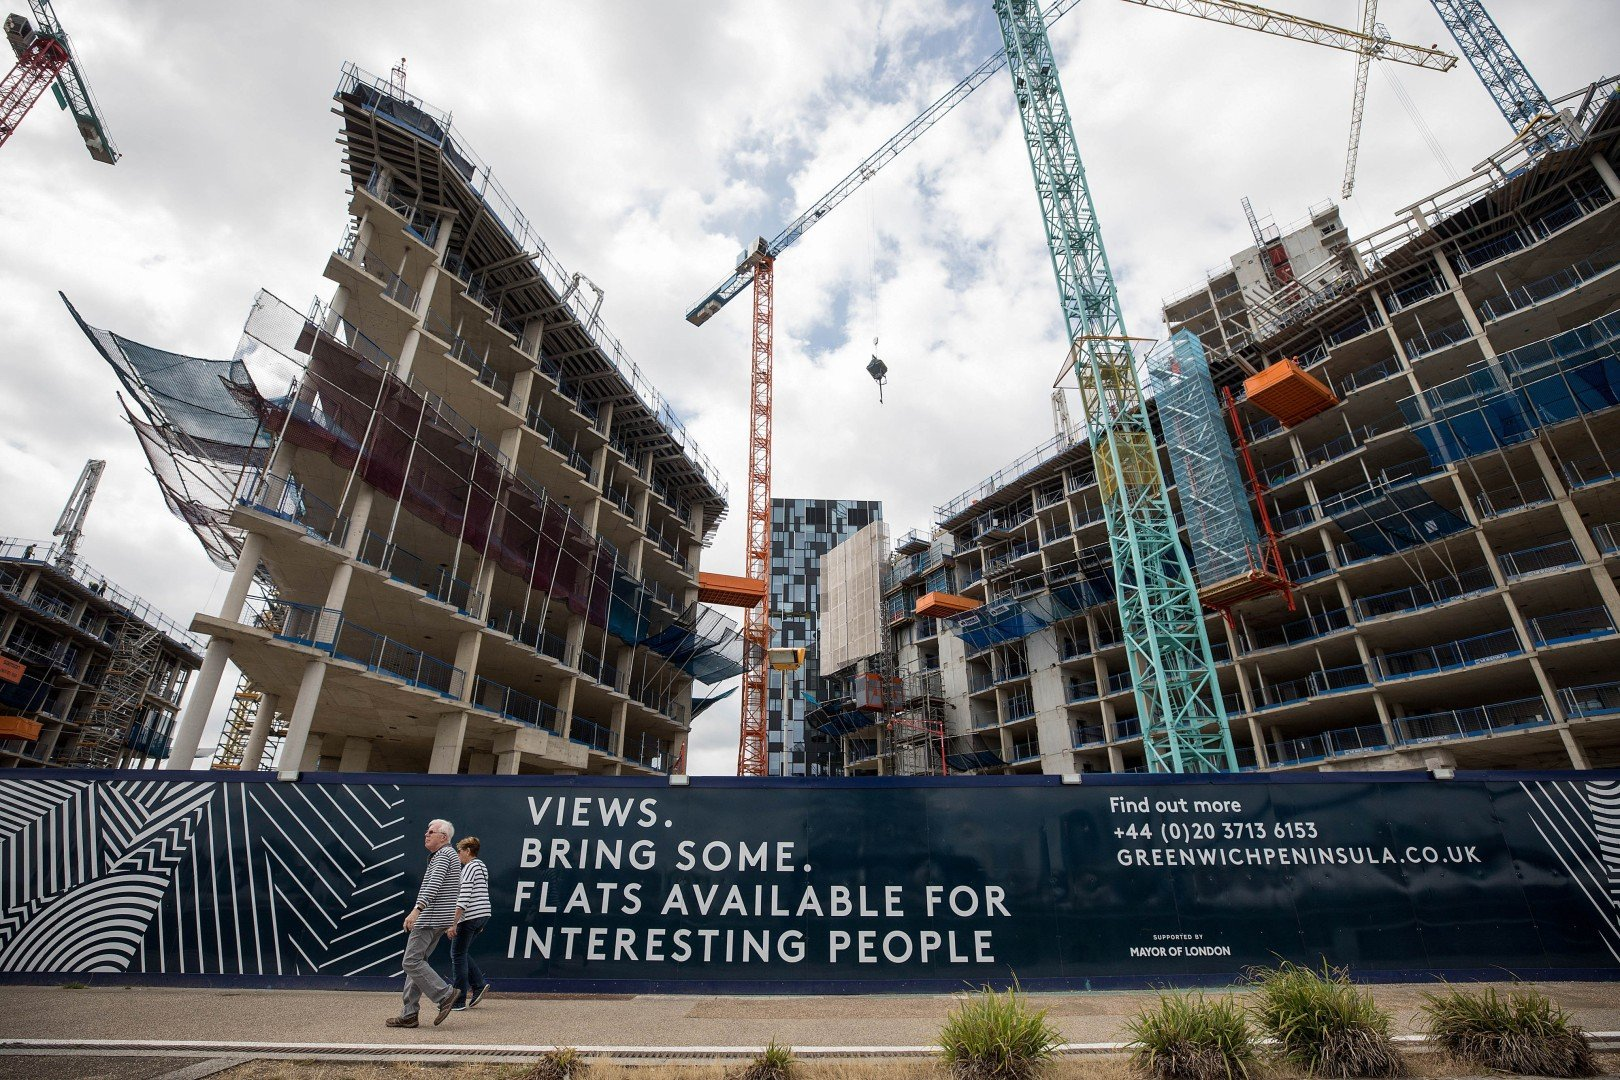 Loans stepped to small UK construction firms to plug gap | South